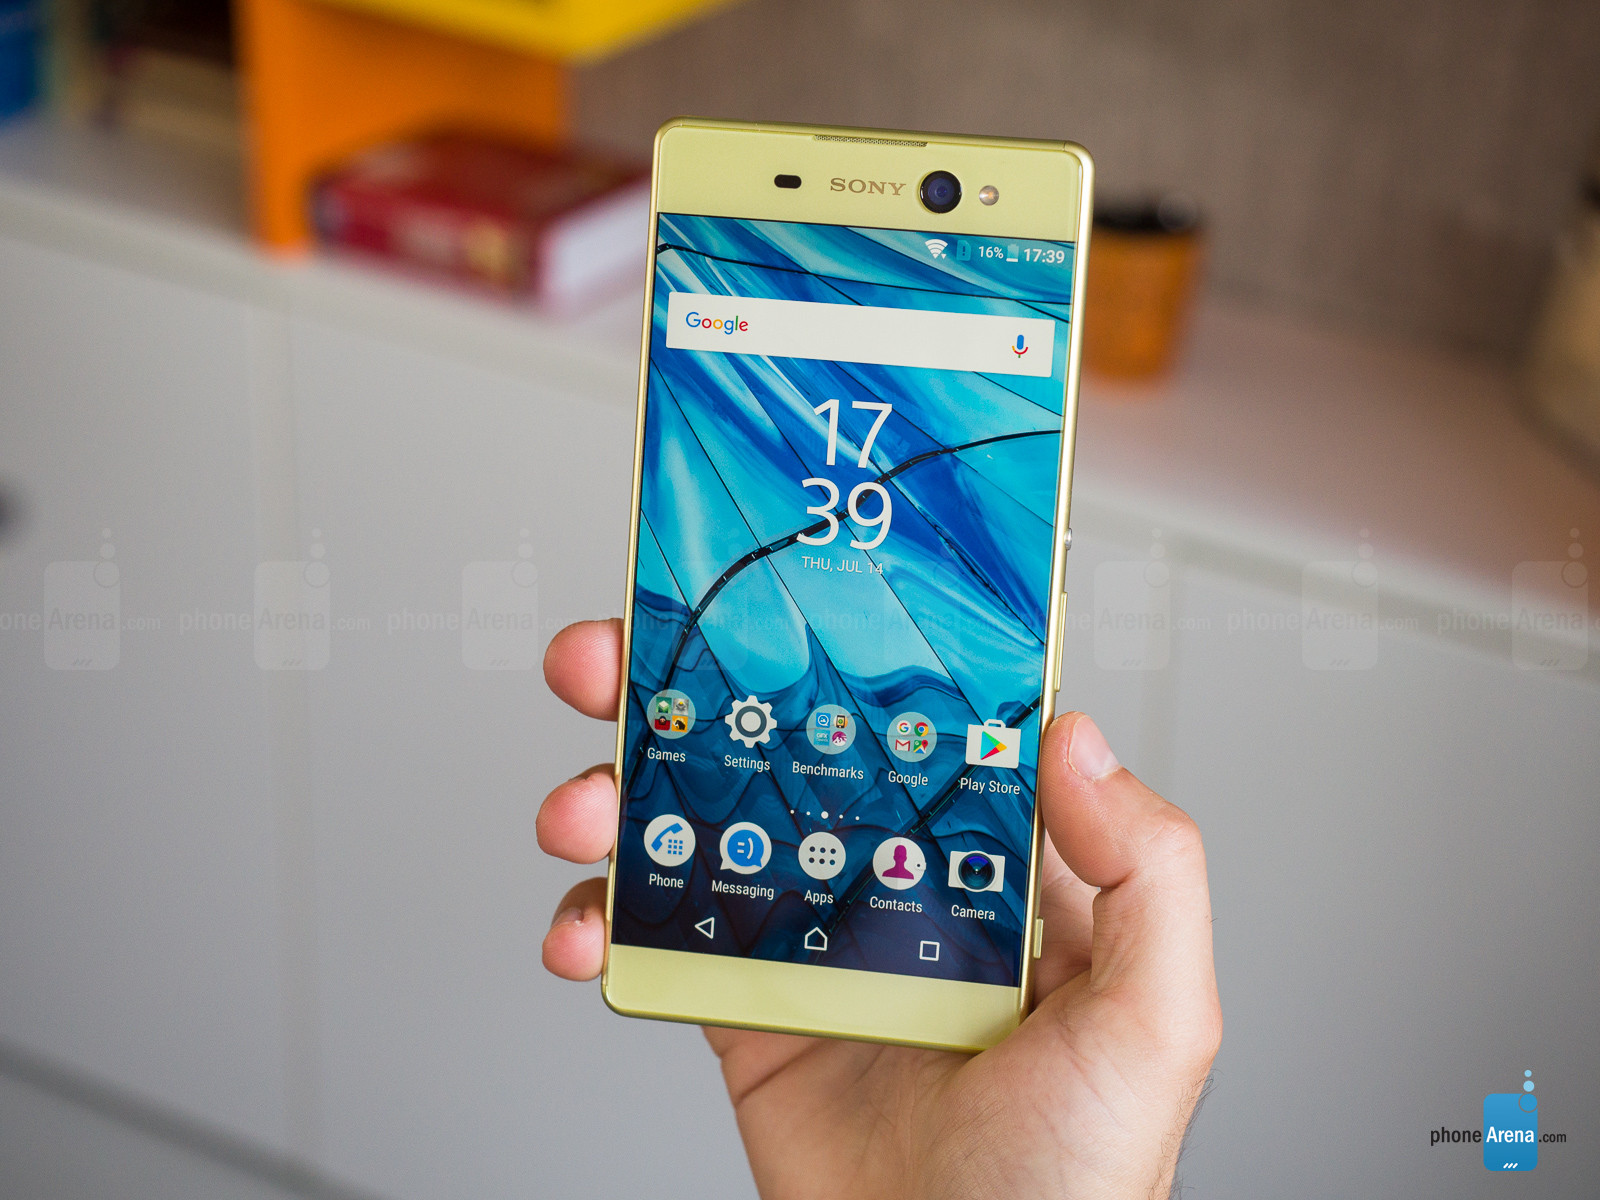 http://click.ir/wp-content/uploads/2016/07/Sony-Xperia-XA-Ultra-Review-004.jpg